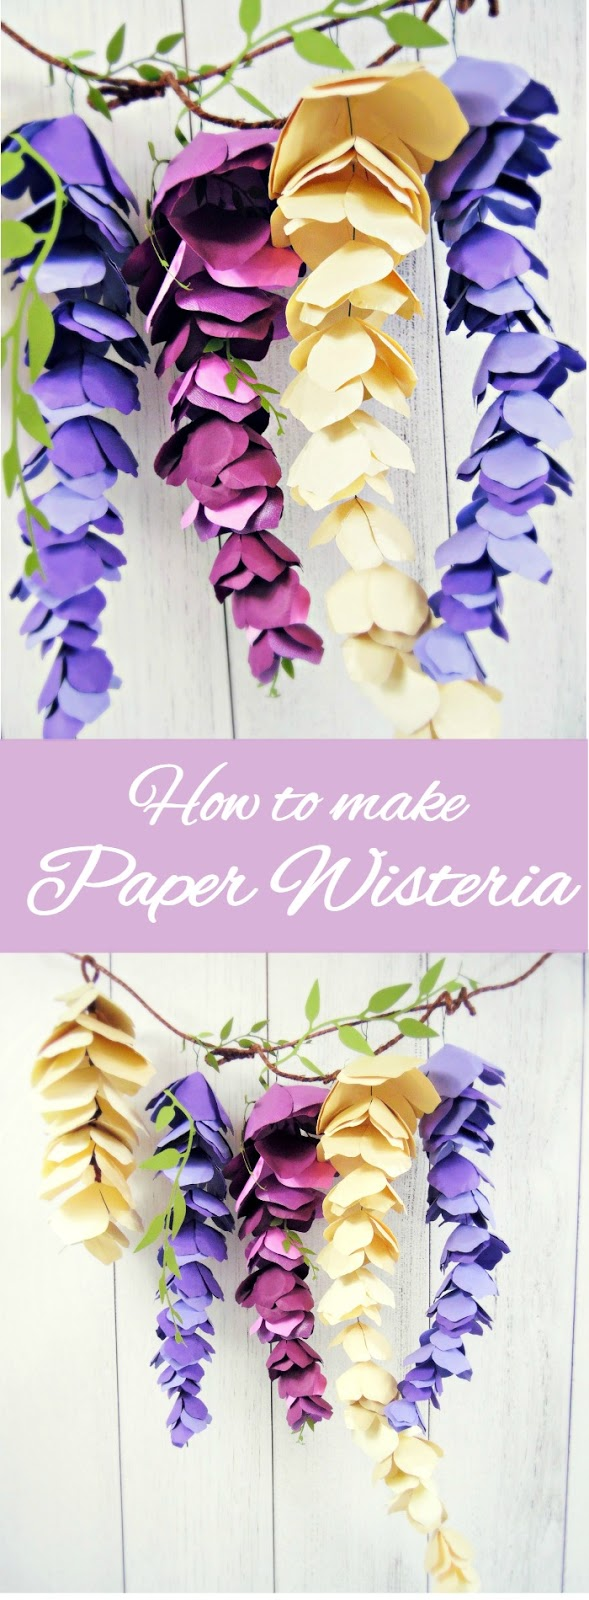 Hanging Paper Wisteria Tutorial & Templates - Catching Colorflies